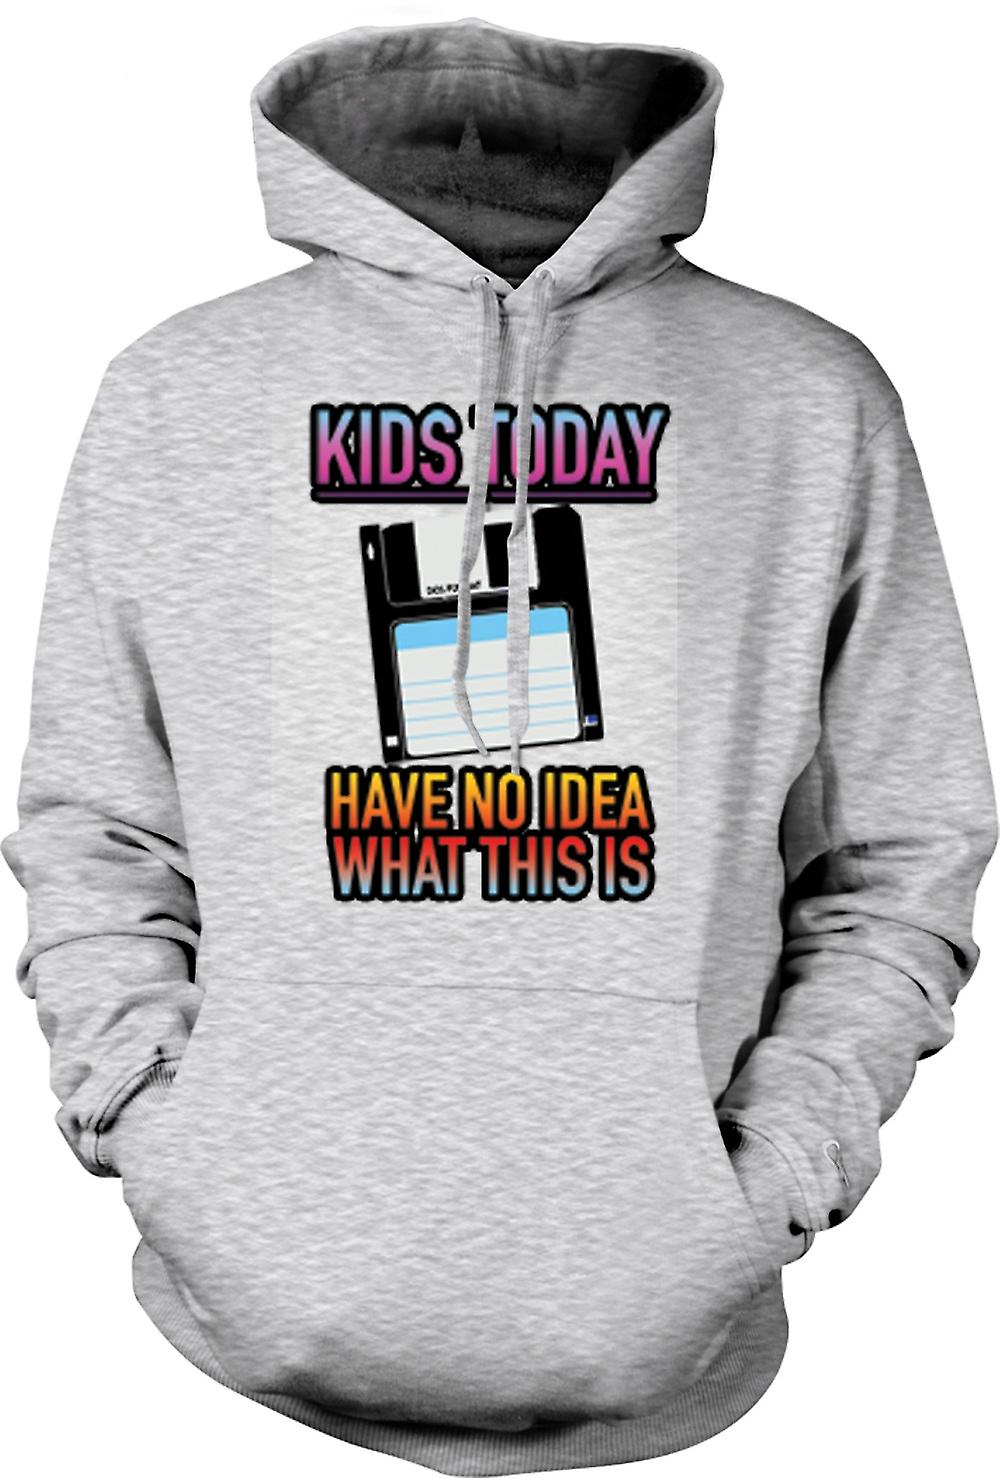 Mens Hoodie - Kids Today Have No Idea What This Is - Floppy Disk